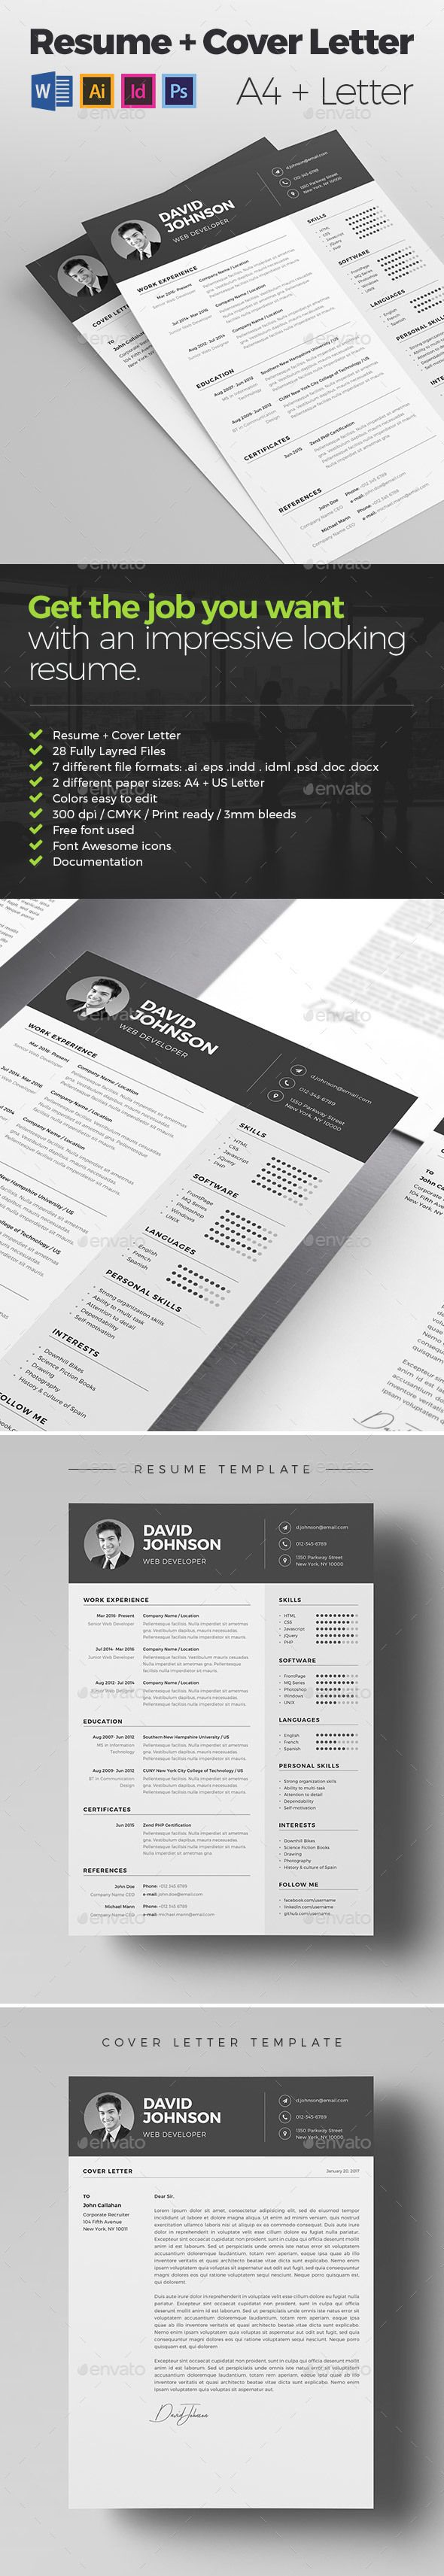 Covering Letters For Resume Bookkeeper Resume Cover